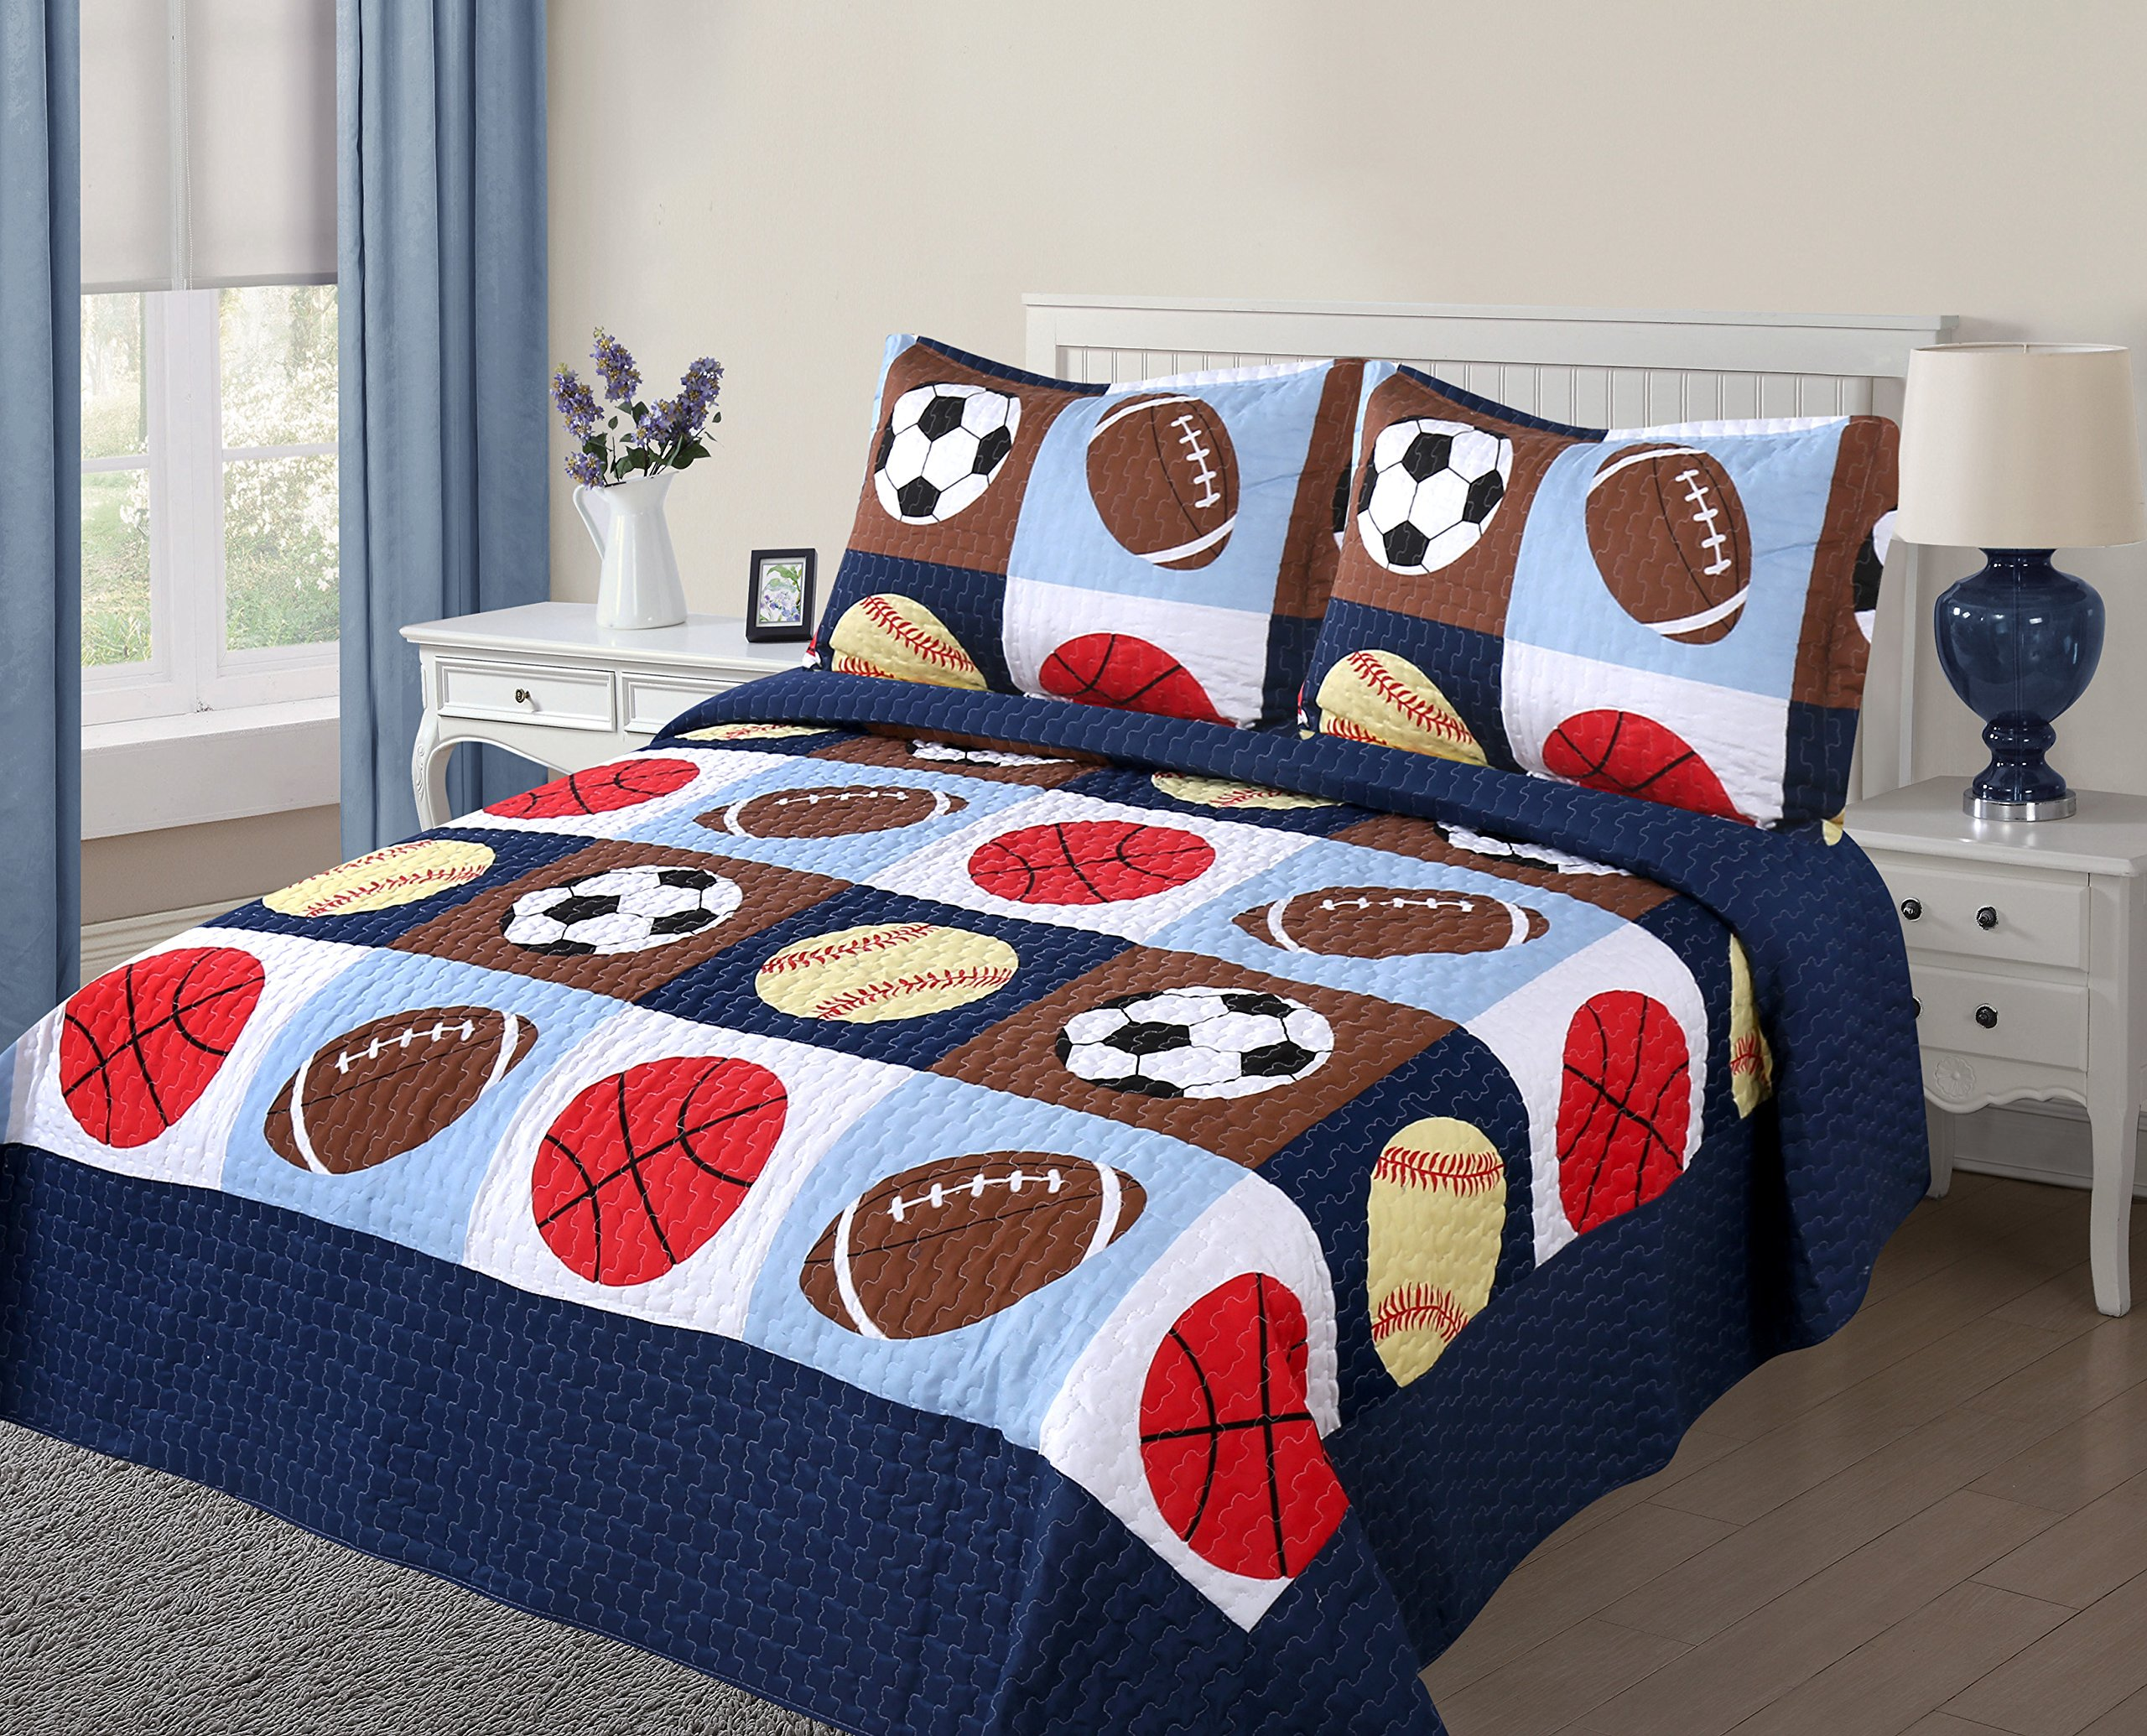 Golden Linens 3 pieces Full Size Quilt Bedspread Set Kids Sports Basketball Football Baseball For Boys & Girls (Full) by Goldenlinens